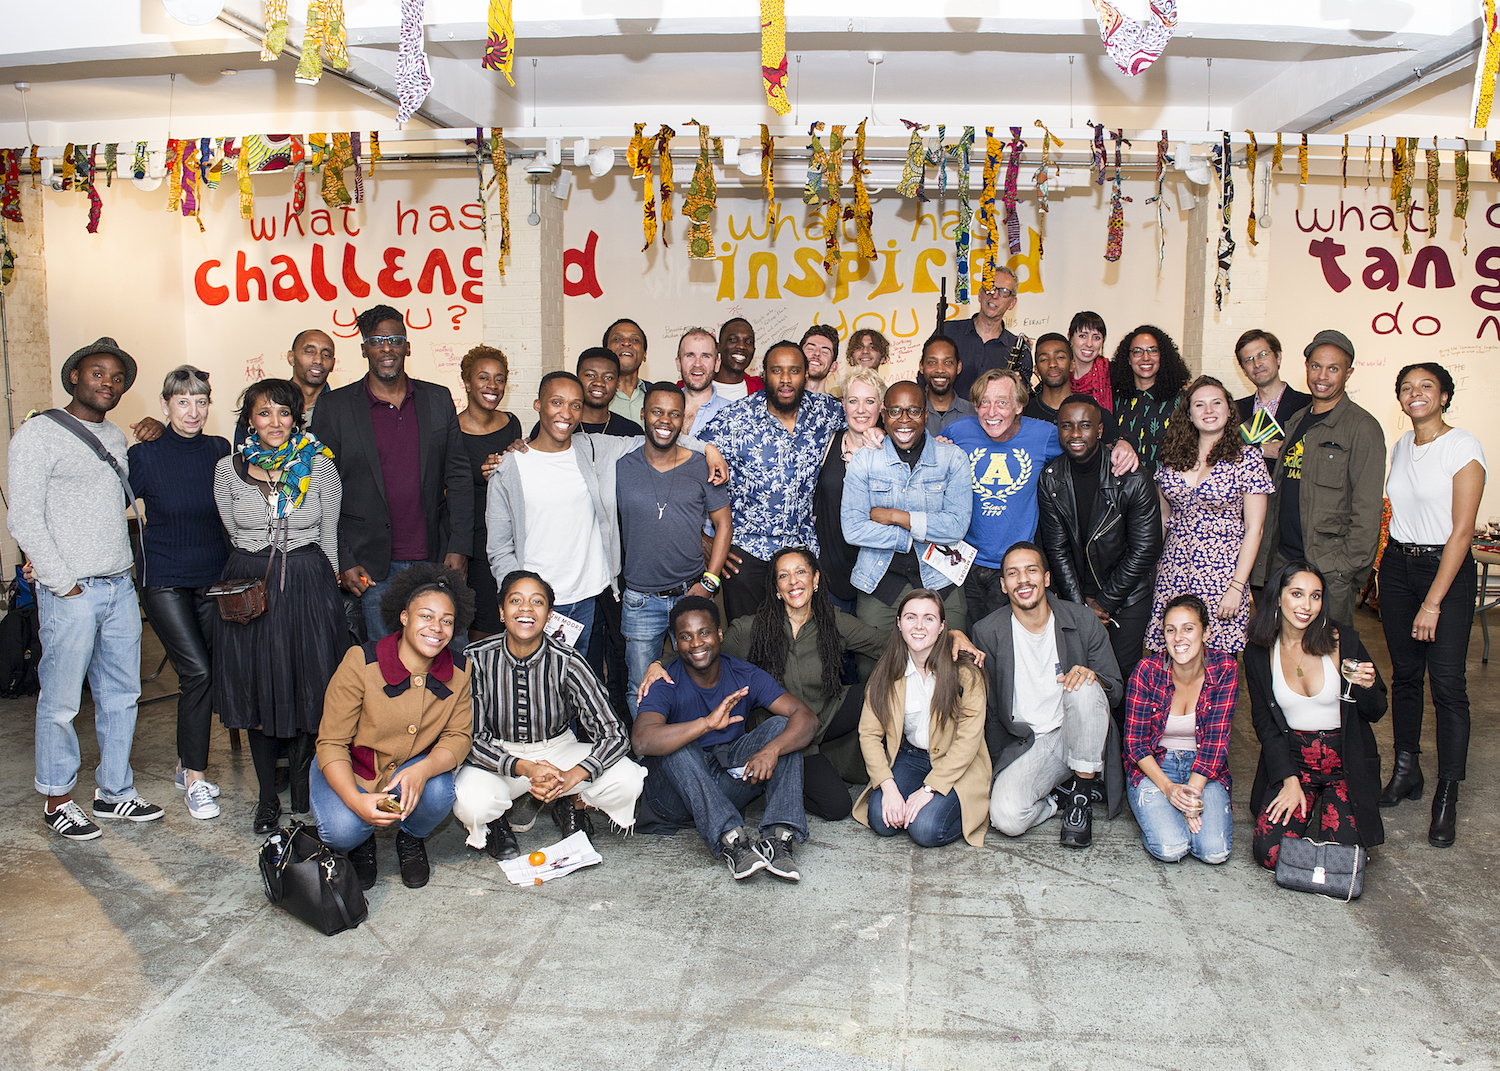 We aim to increase cultural understanding - Our year-round programme helps grow creative and collaborative spaces where world views, languages and customs are positively championed within the UK's evolving communities. By building bridges between different cultures, we aim to increase social cohesion and cultural understanding across the UK.